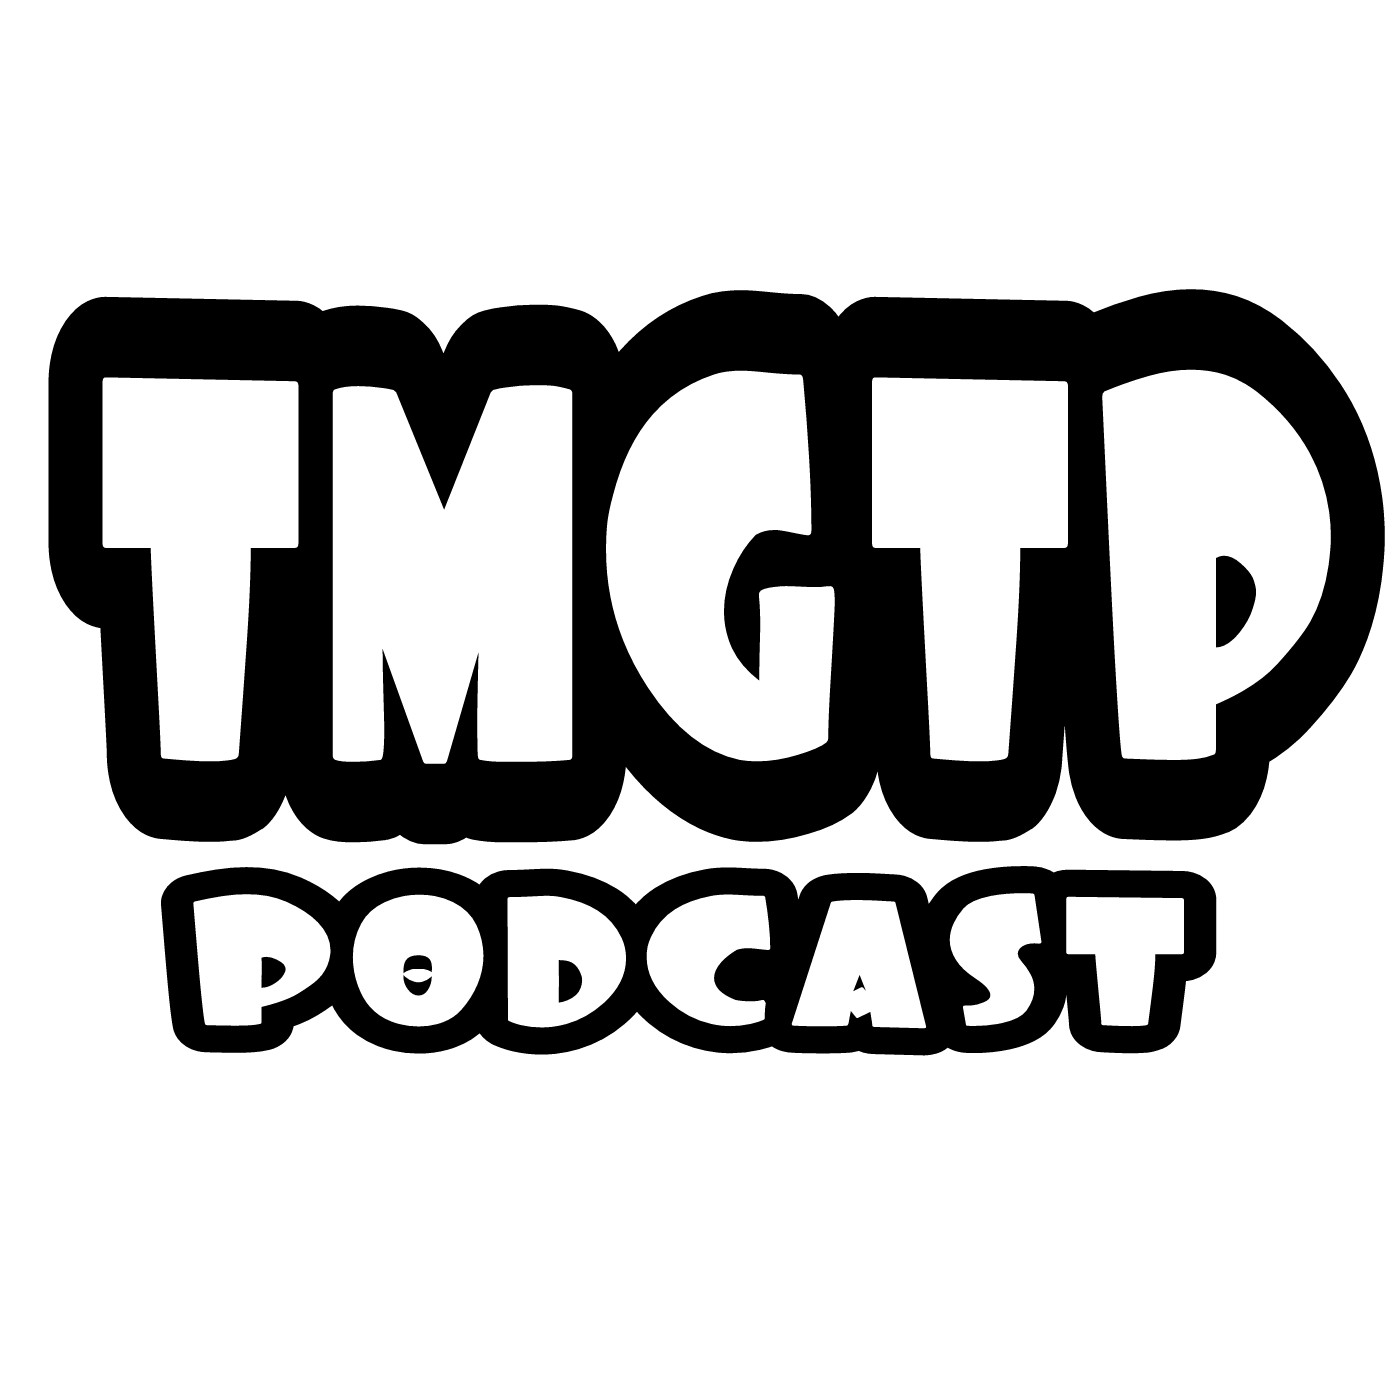 TMGTP Podcast